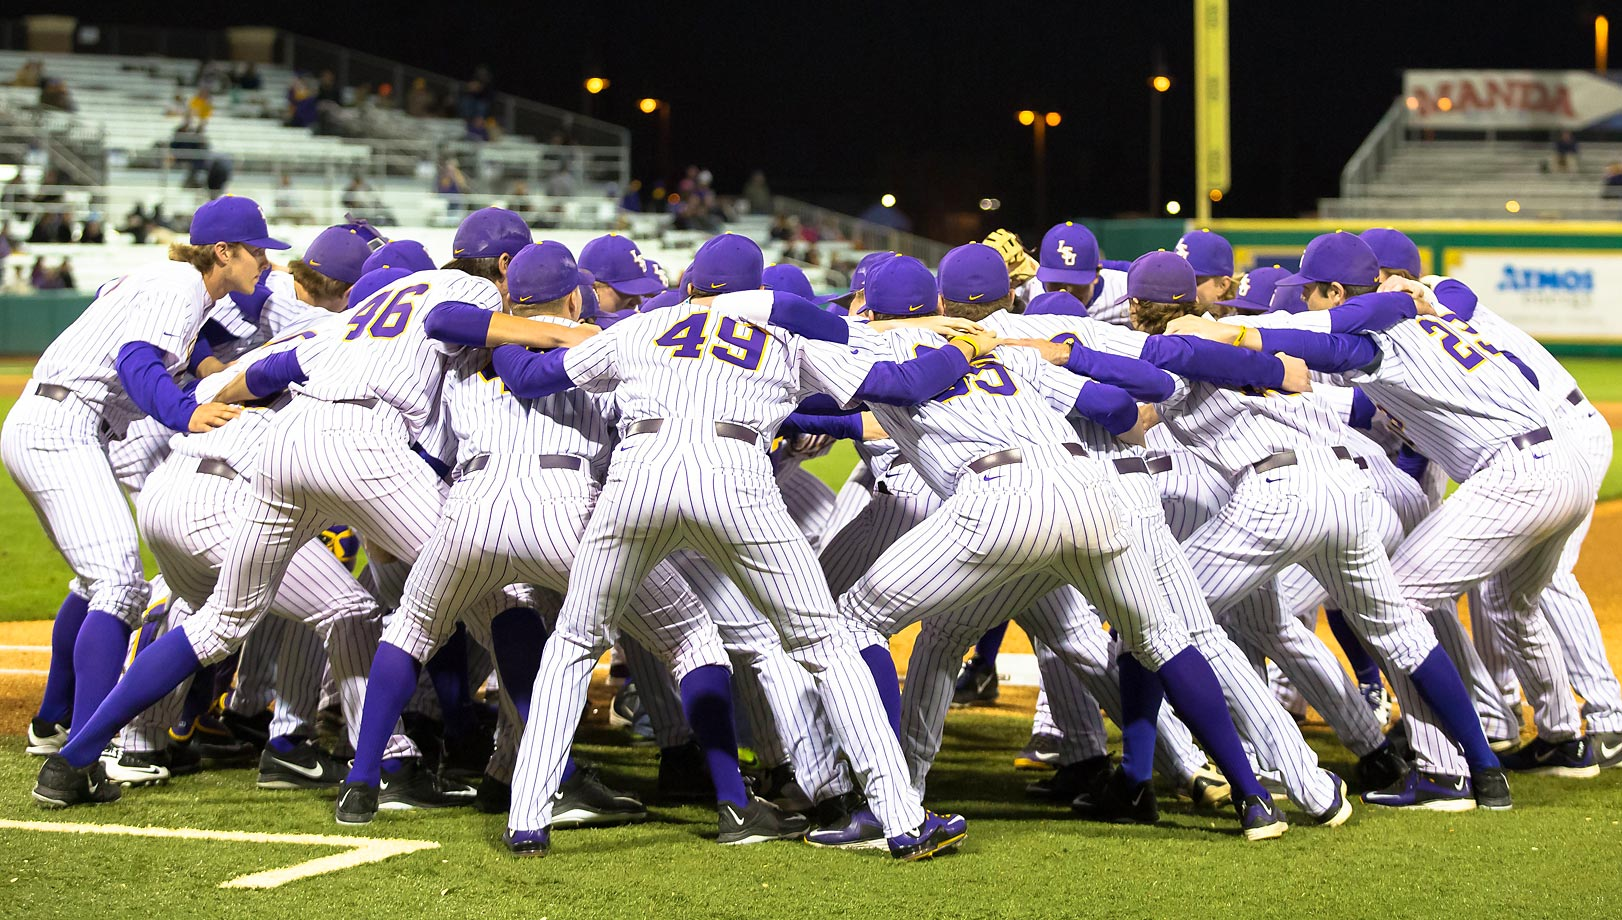 LSU Tigers pump themselves up during a game against Nicholls State University at Alex Box Stadium.